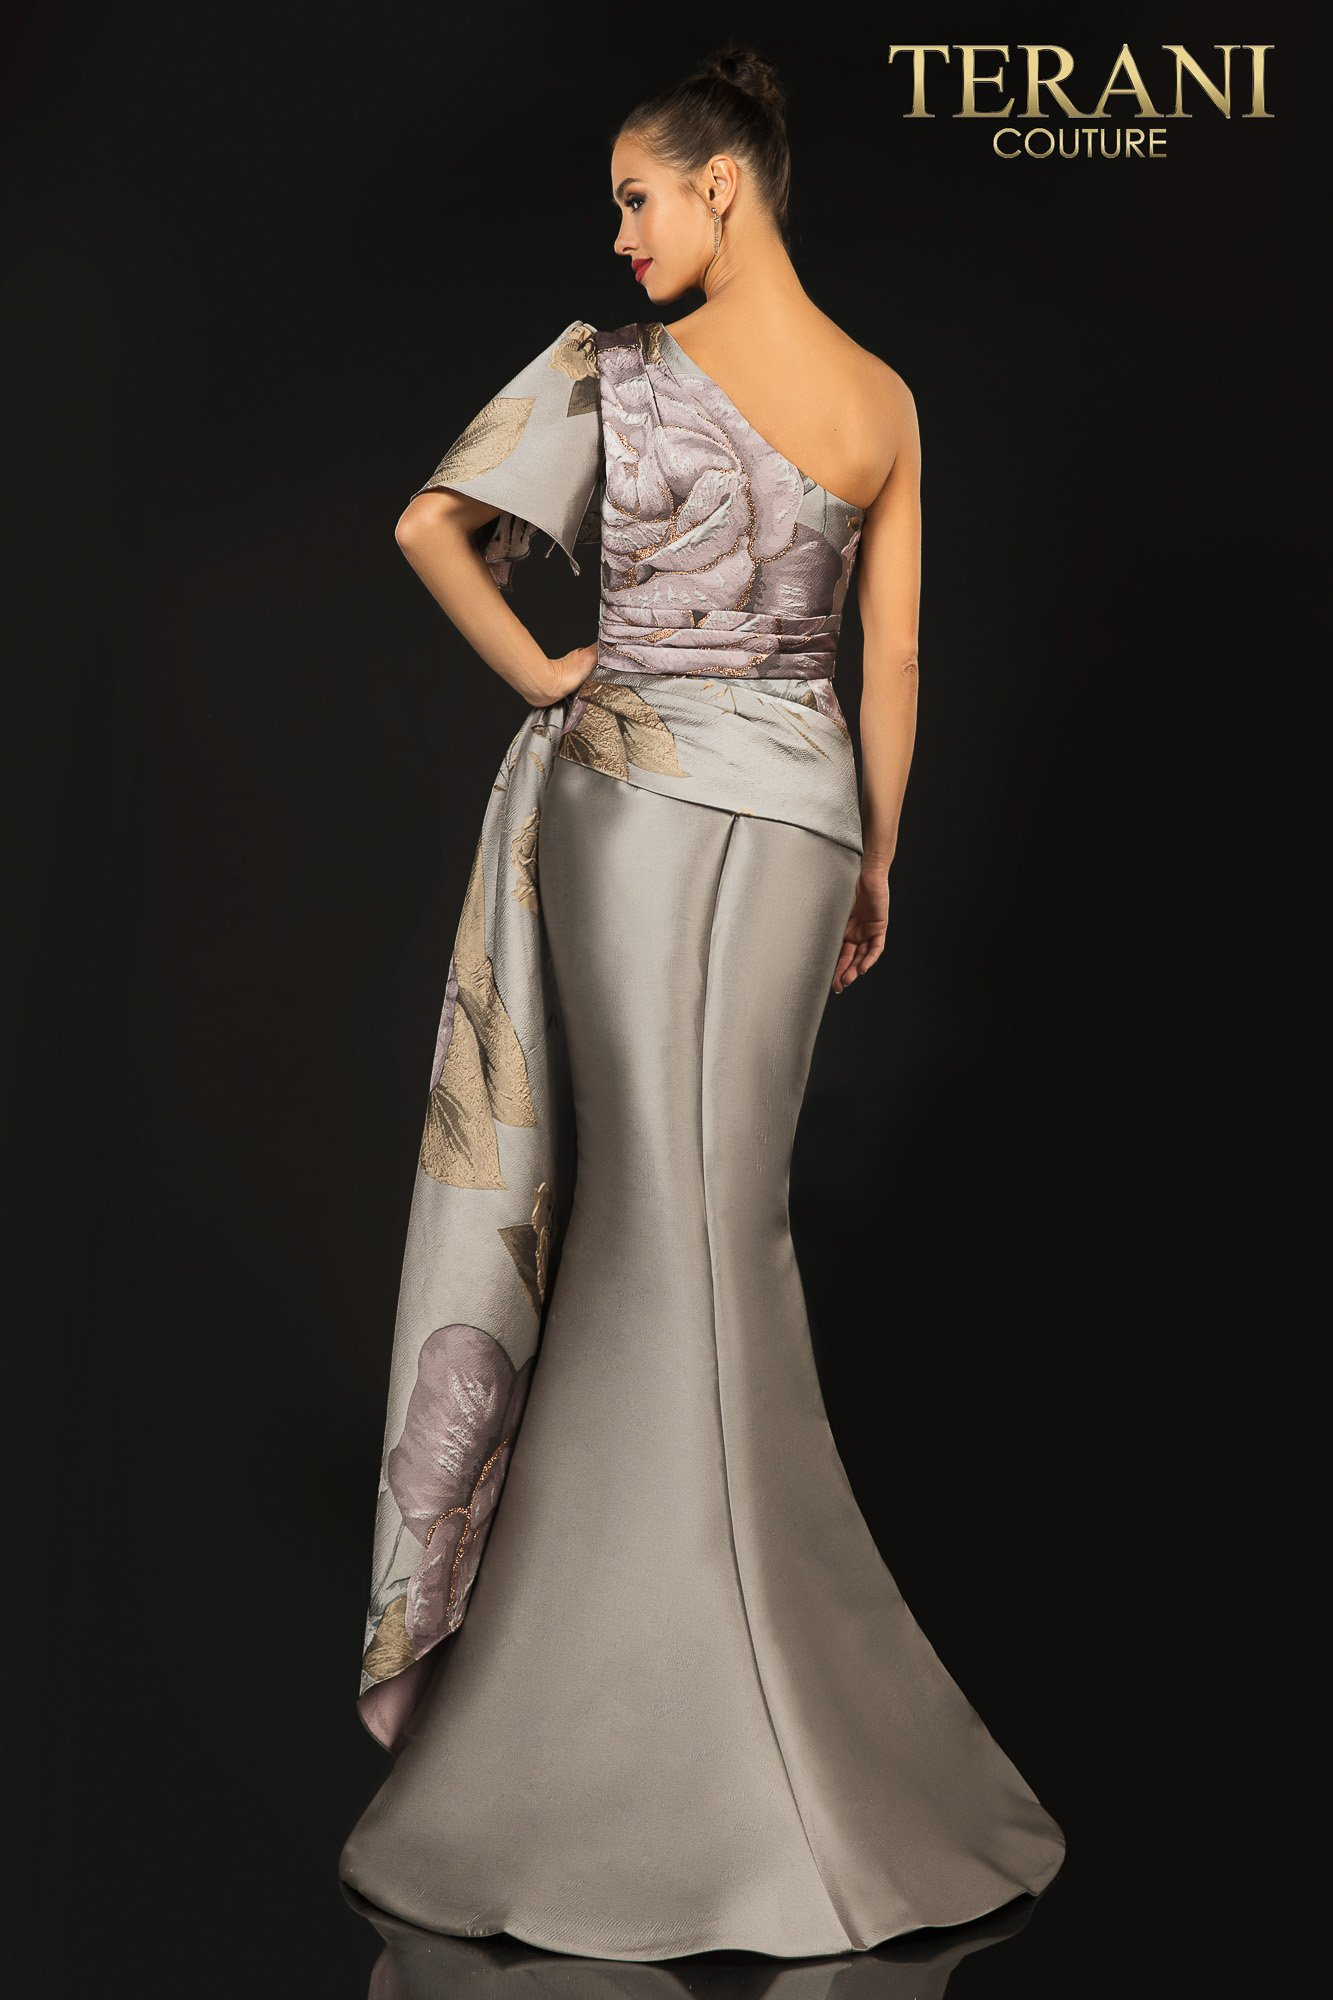 Style: Printed Jacquard one shoulder evening gown with sash – 2011E2100